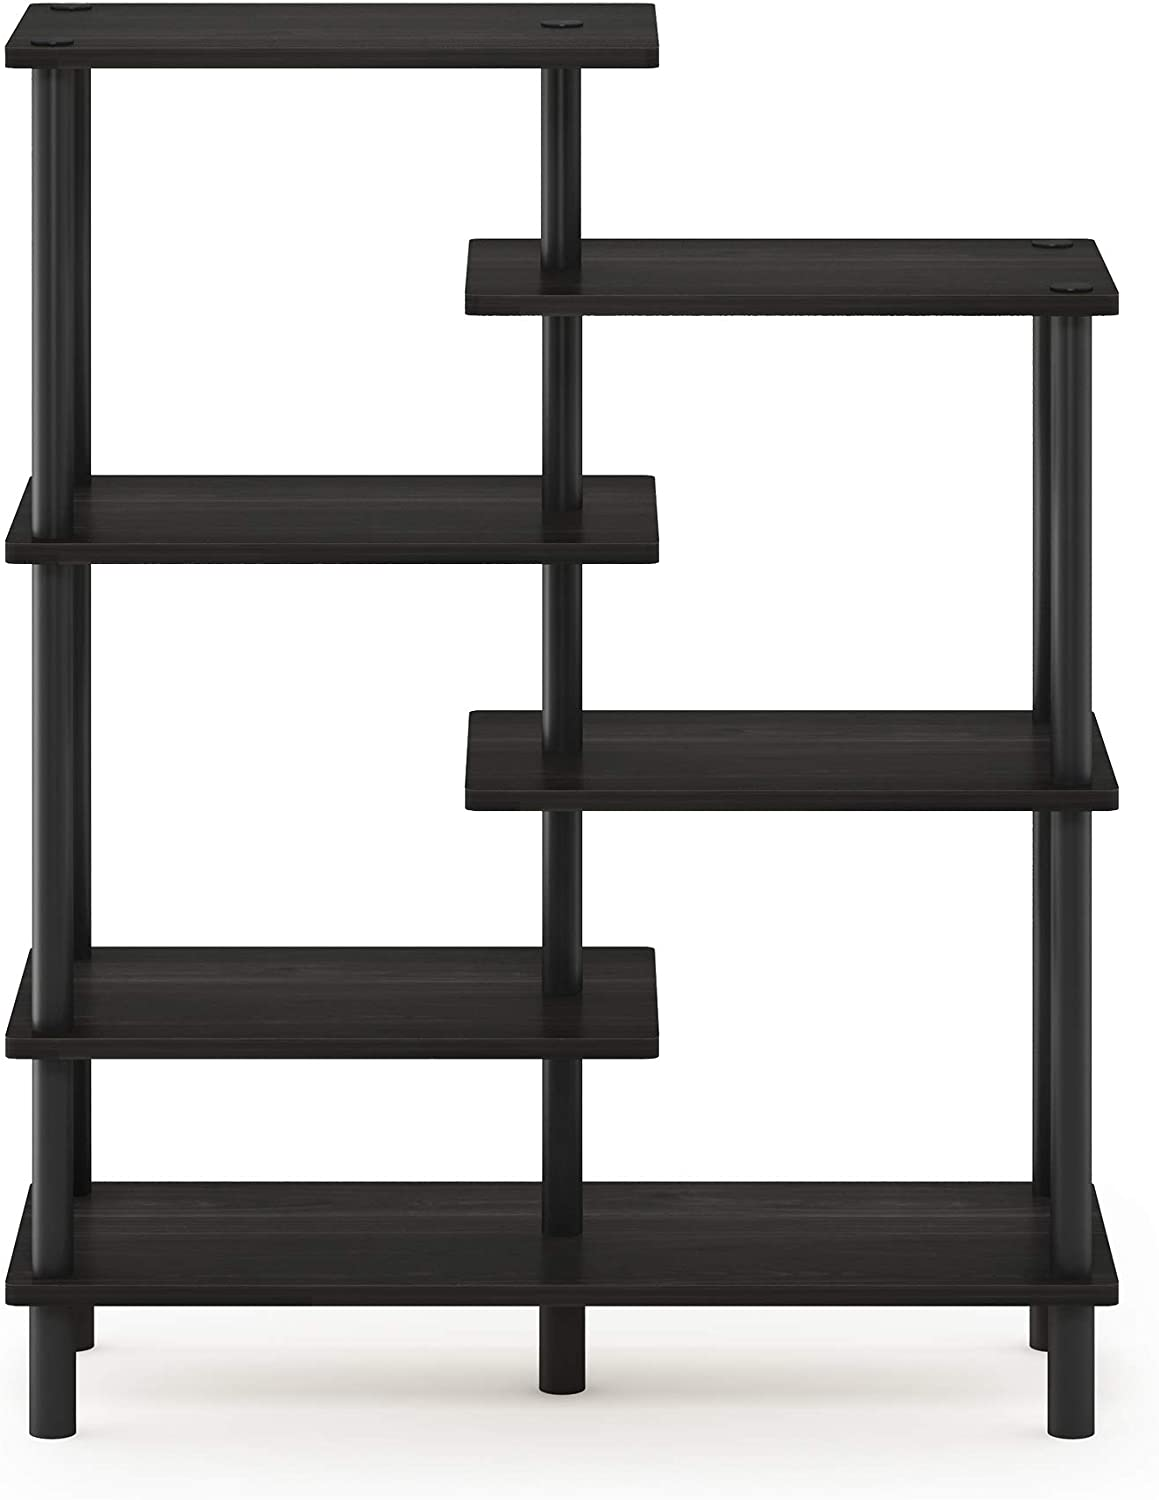 Furinno Turn-N-Tube 6-Tier Accent Display Rack, Espresso/Black